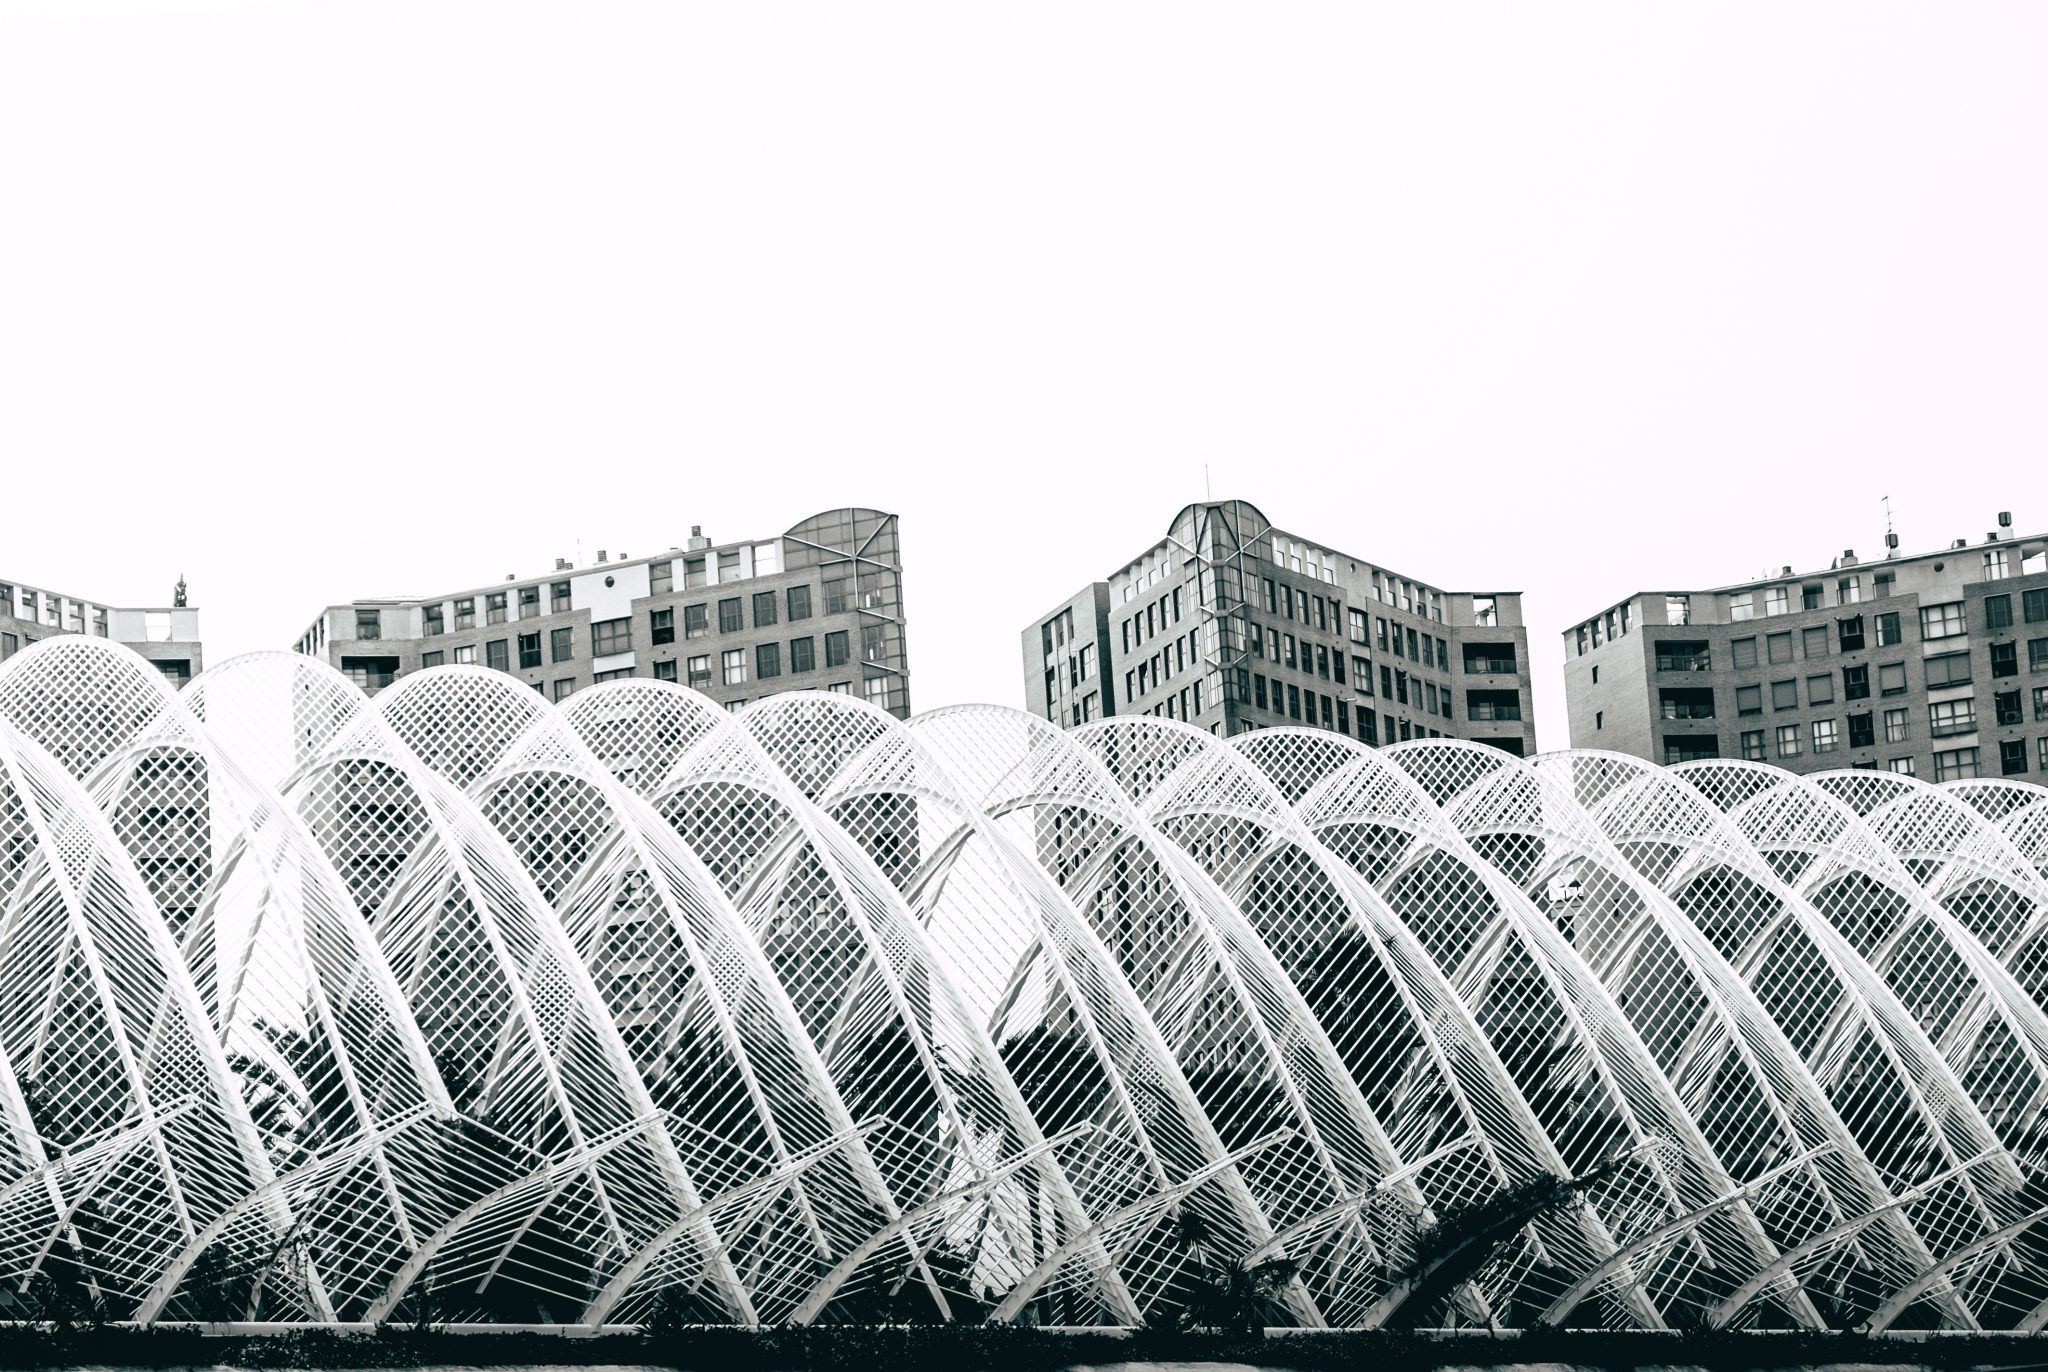 The architectural complex The City of Arts and Sciences in the city of Valencia photo by Jo Kassis